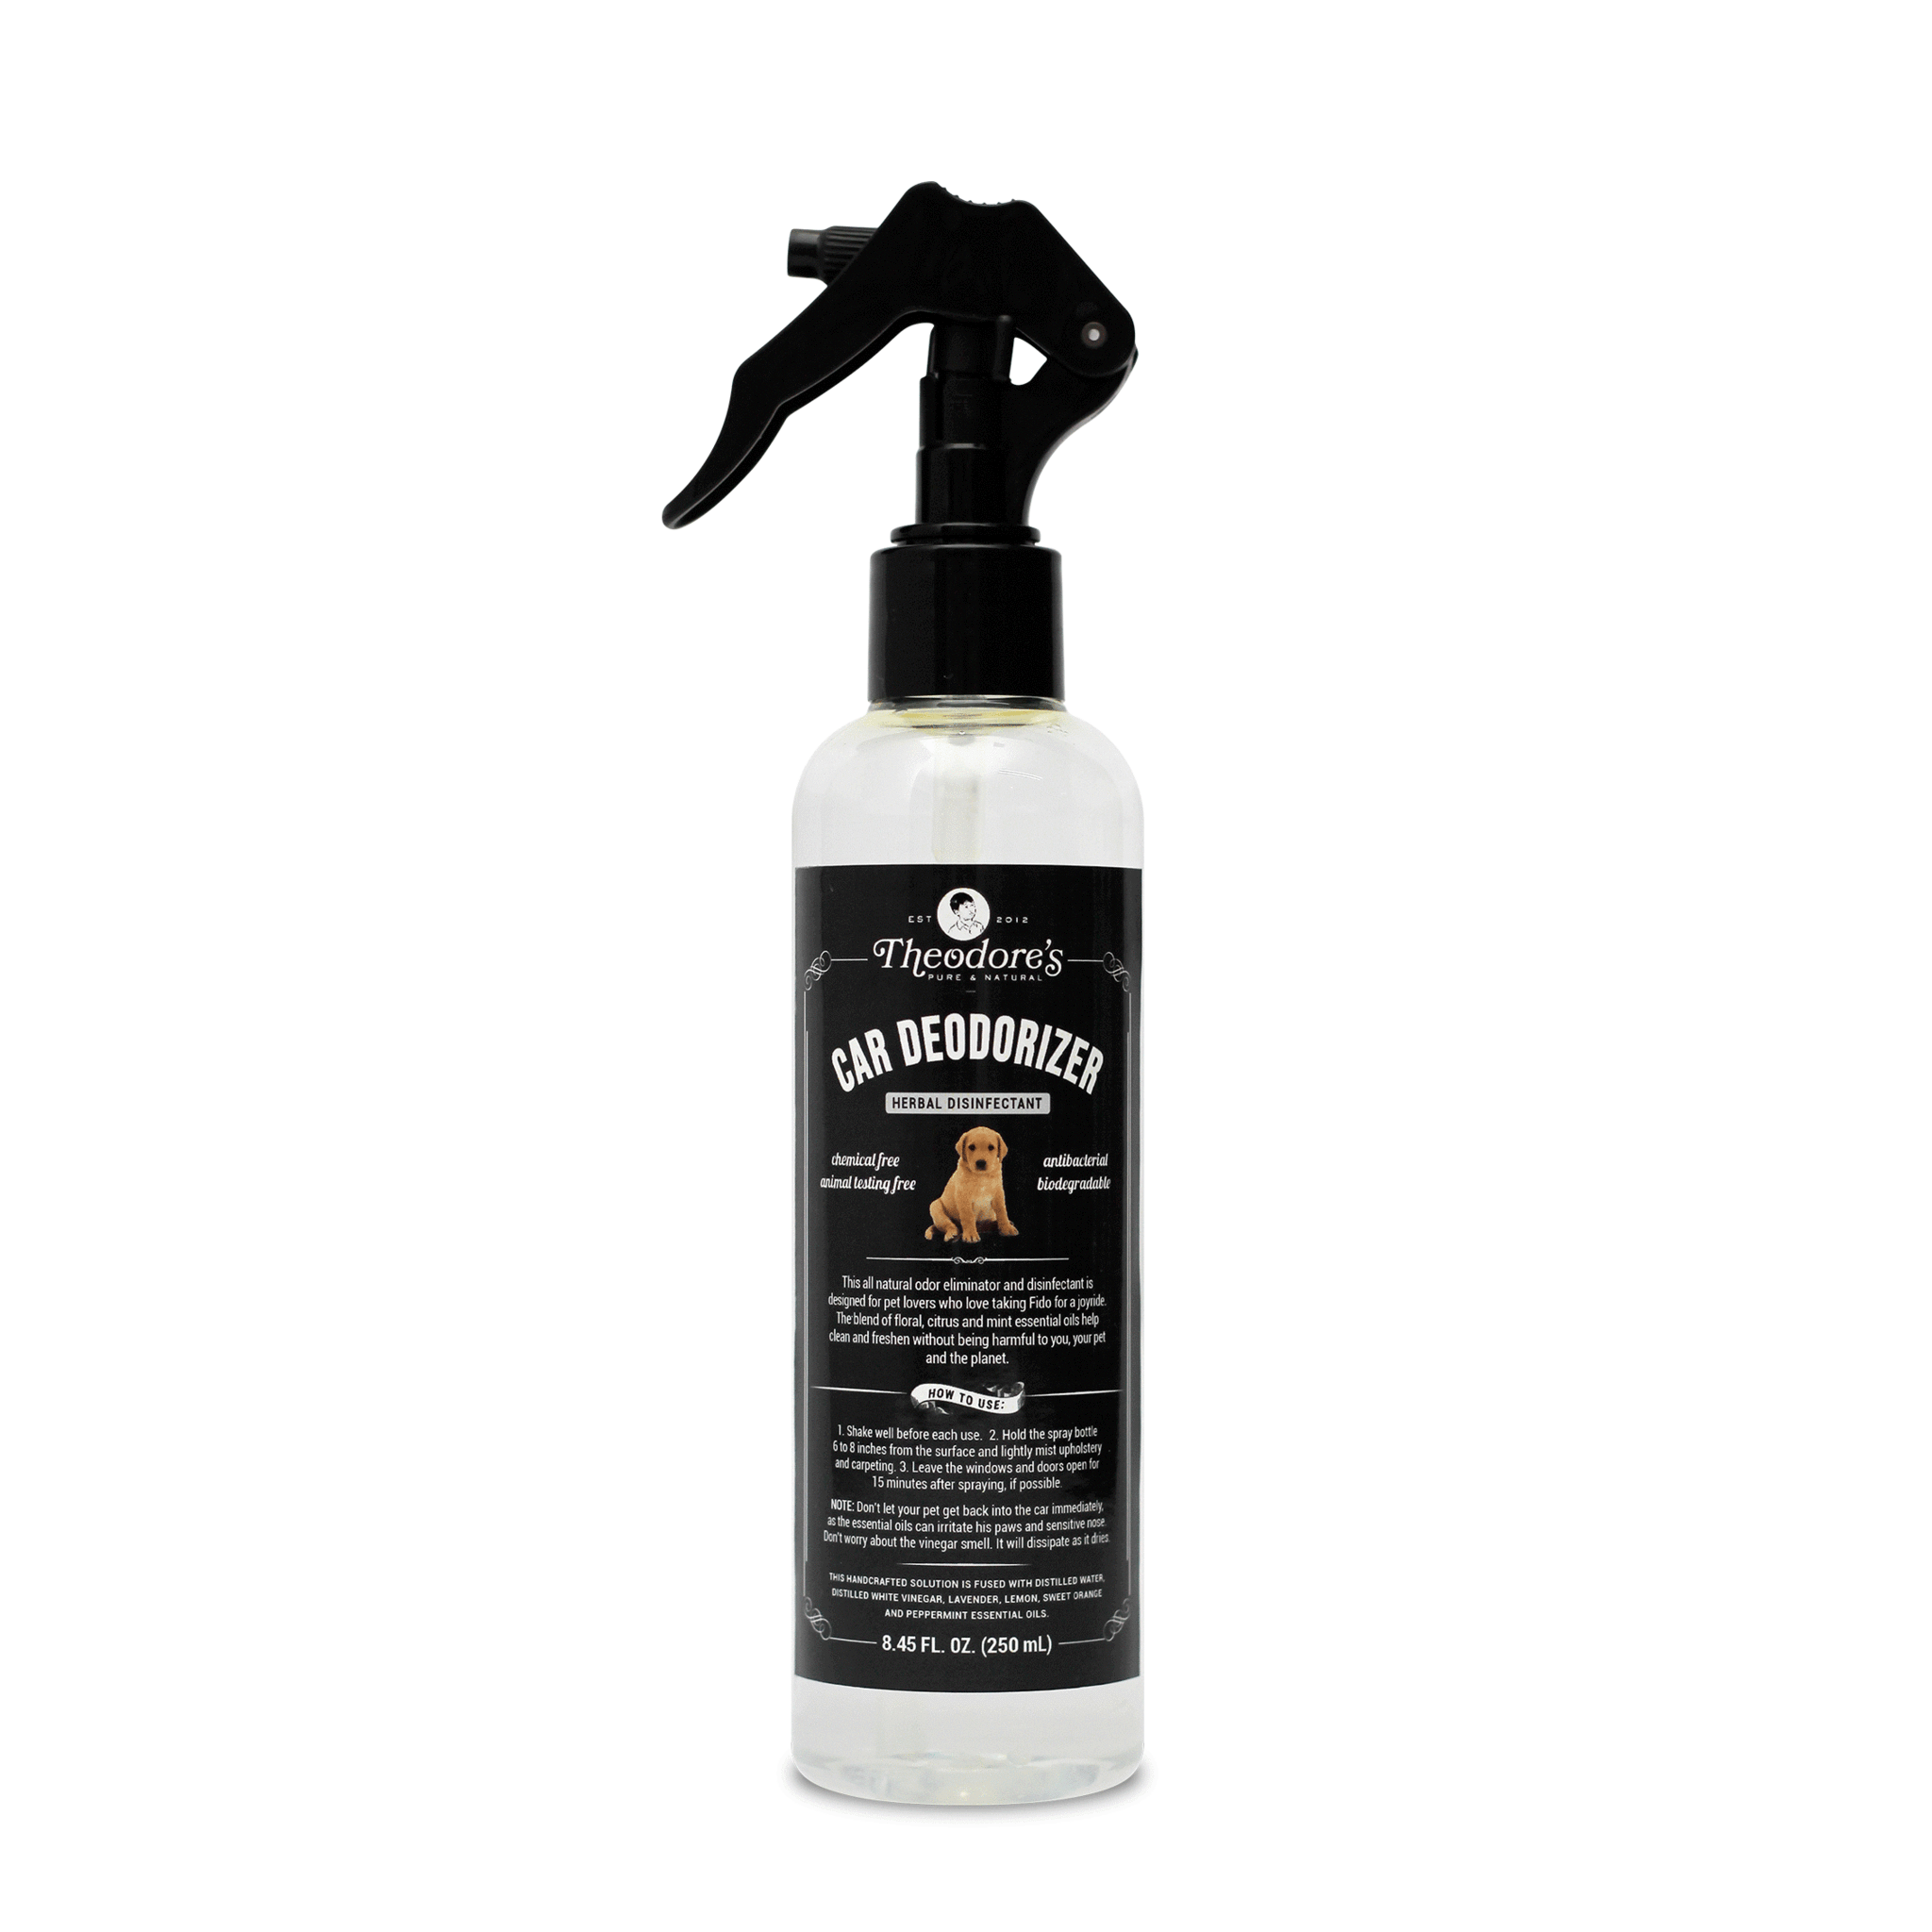 Theodore's Car Deodorizer Herbal Disinfectant - 250ml